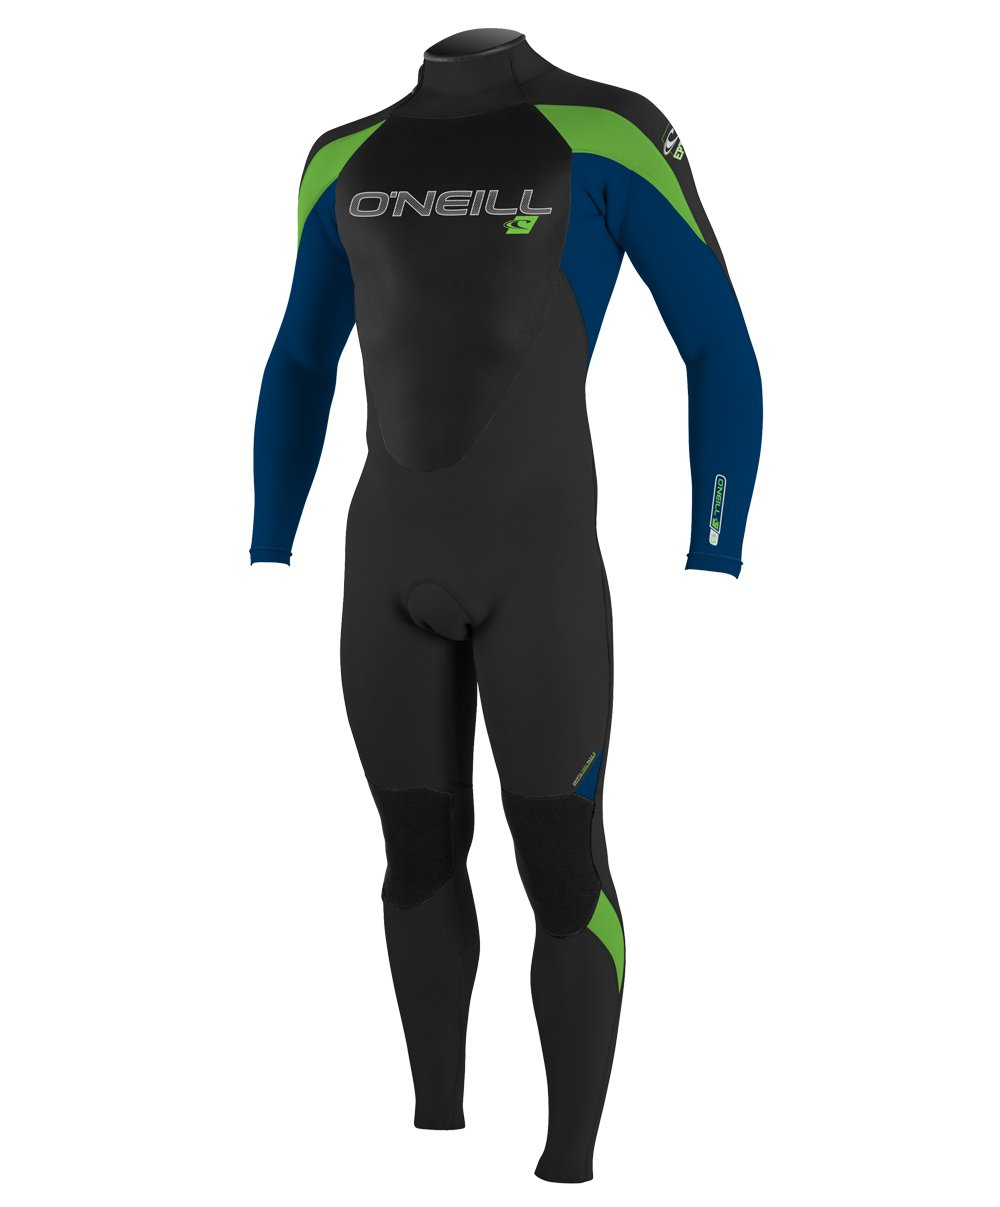 O'Neill Youth Epic 3/2mm Back Zip Full Wetsuit, Black/Deep Sea/Dayglo, 4